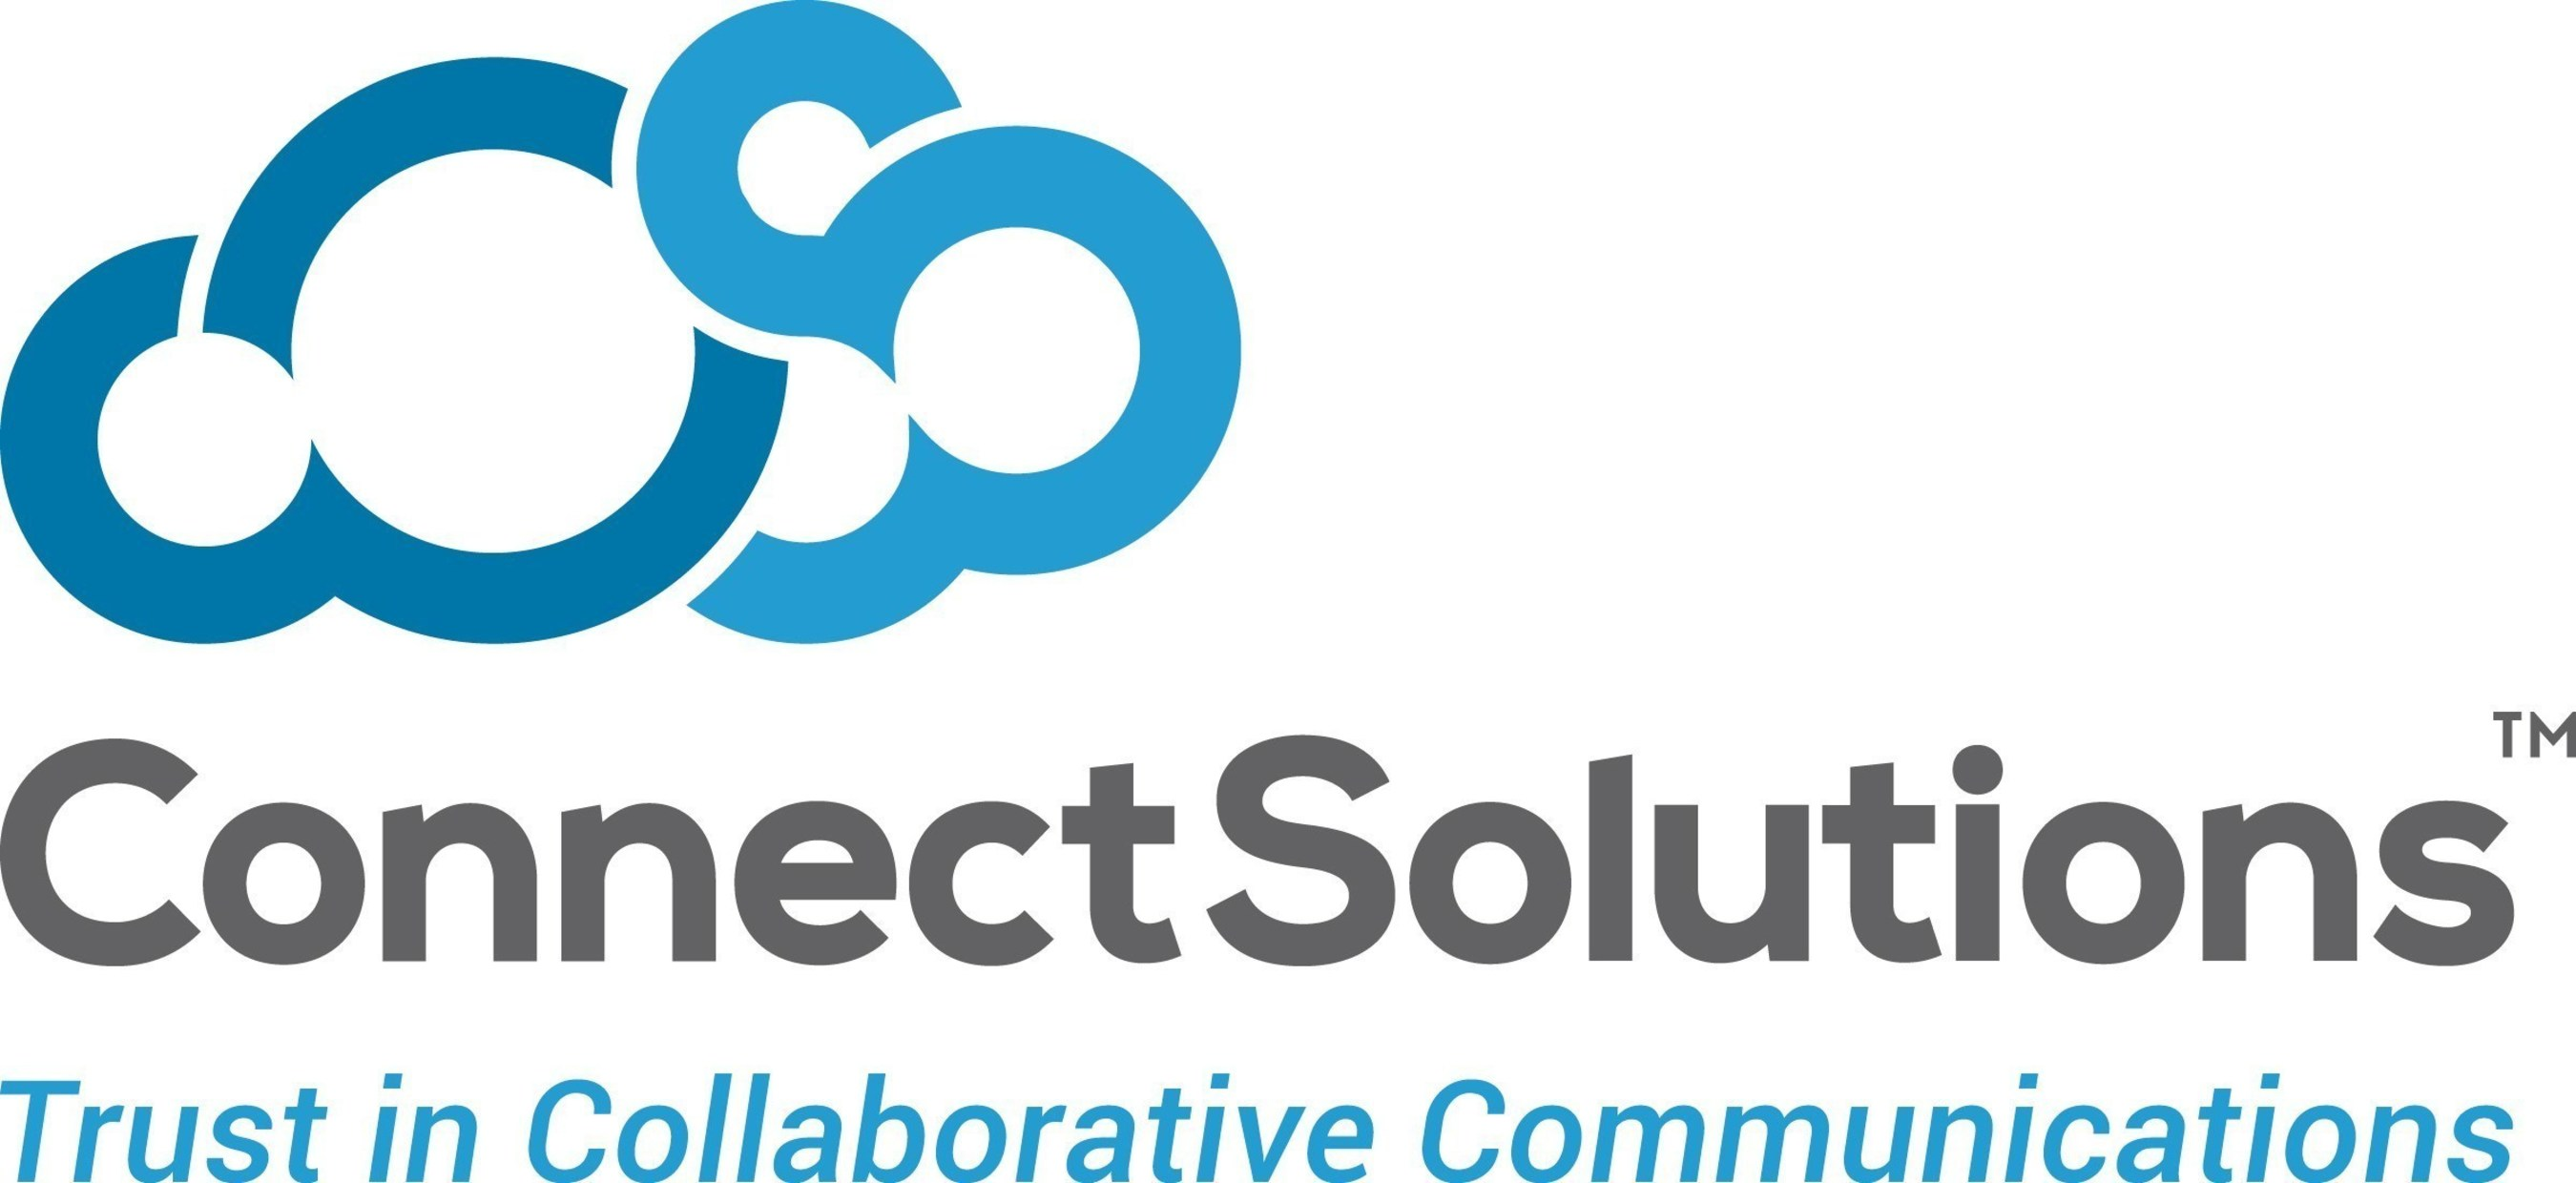 ConnectSolutions Presents Free Webinar: Bridge the Gap to the Cloud with Adobe Connect